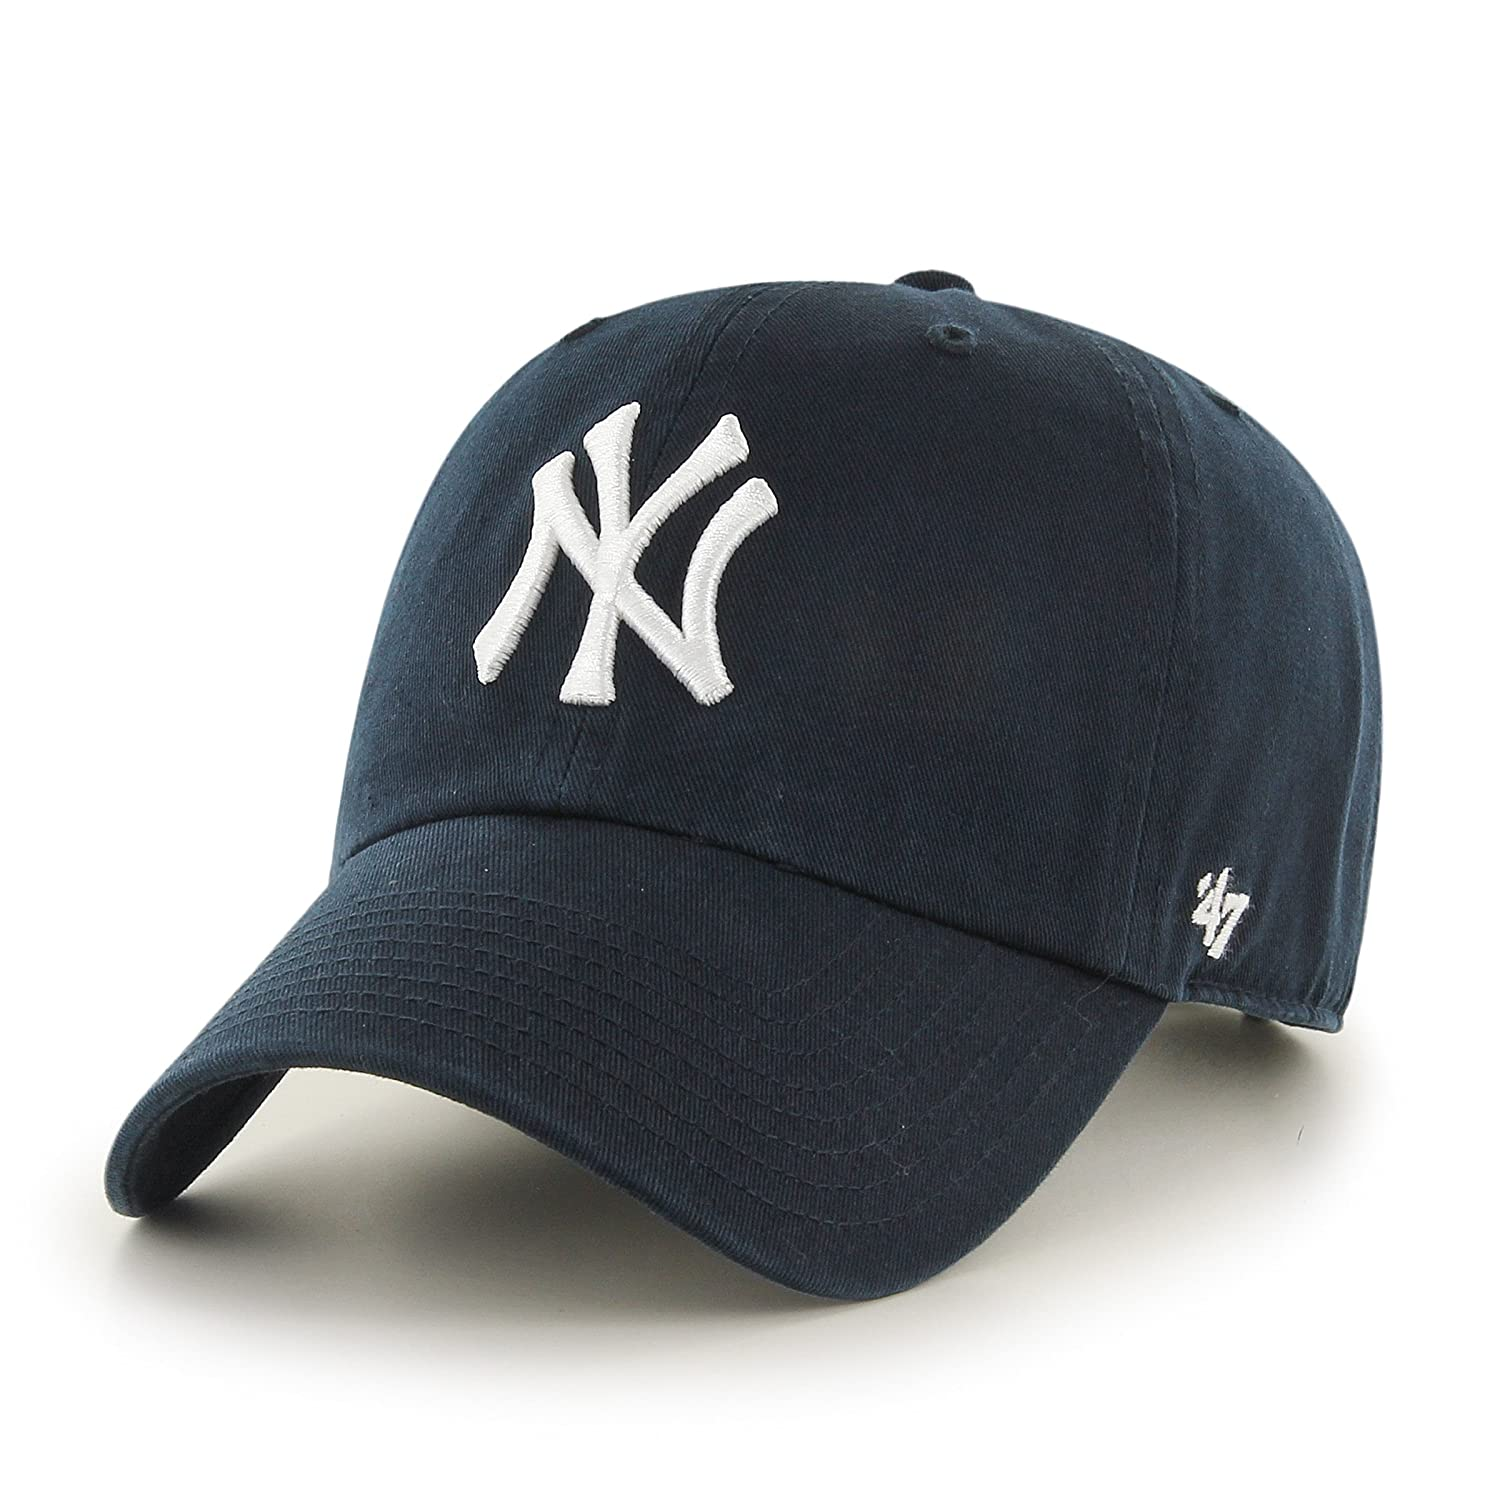 MLB 47 Clean Up Adjustable Hat  Adult